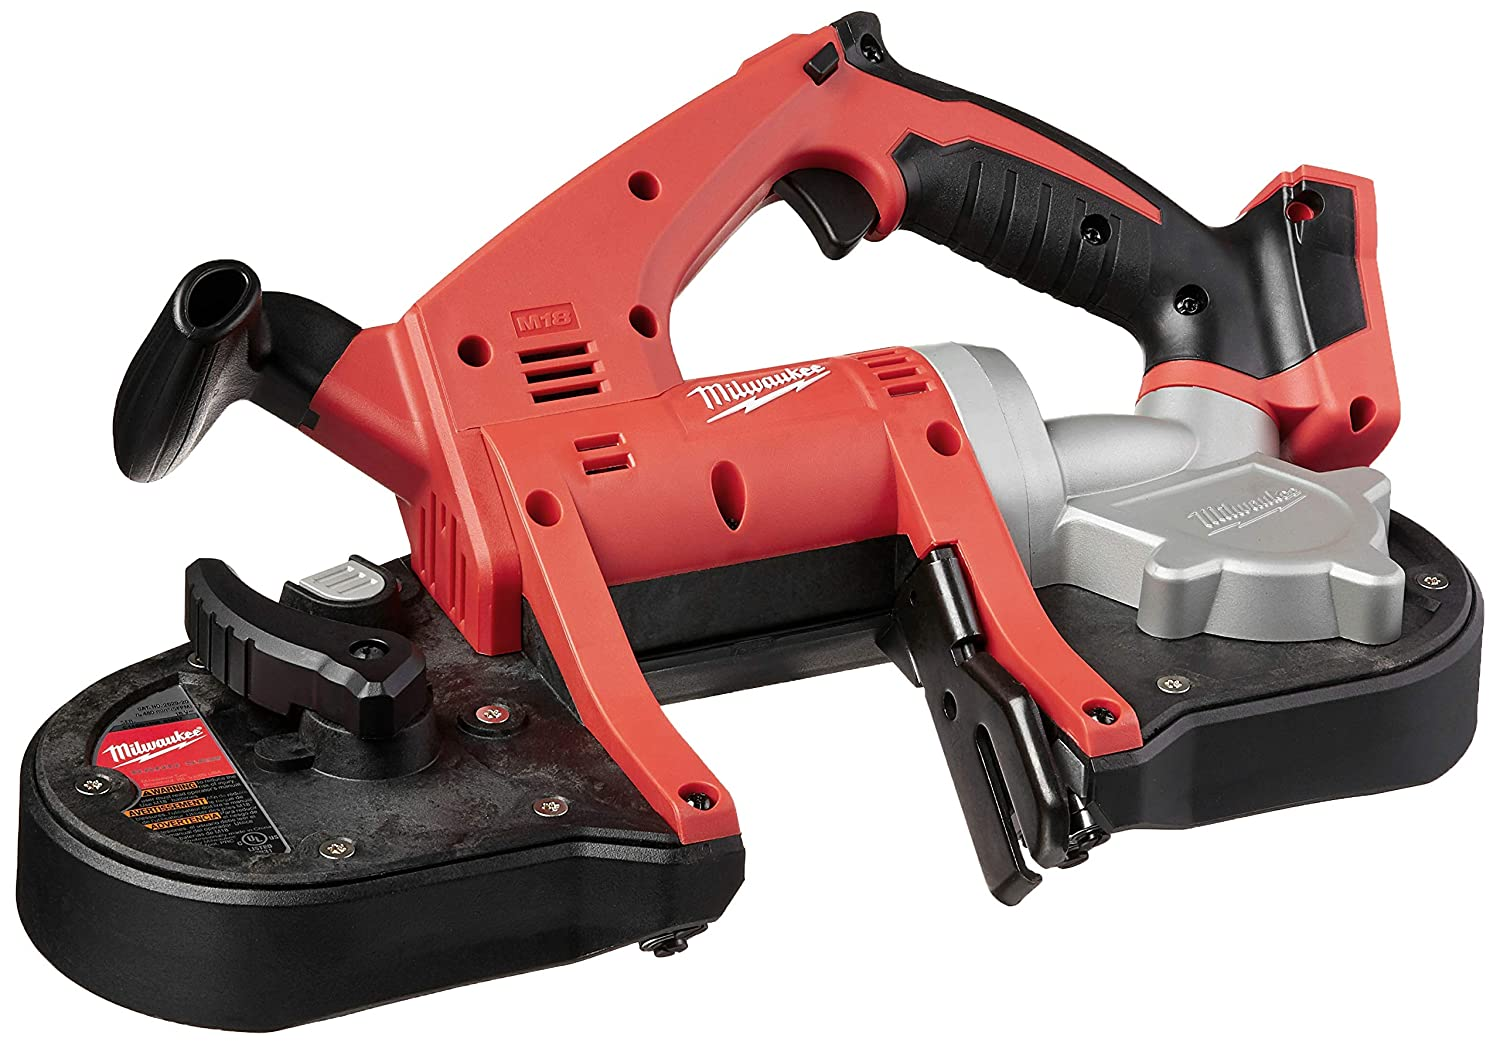 Milwaukee 2629-20 Bare-Tool M18 18V Cordless Band Saw Tool Only, No Battery